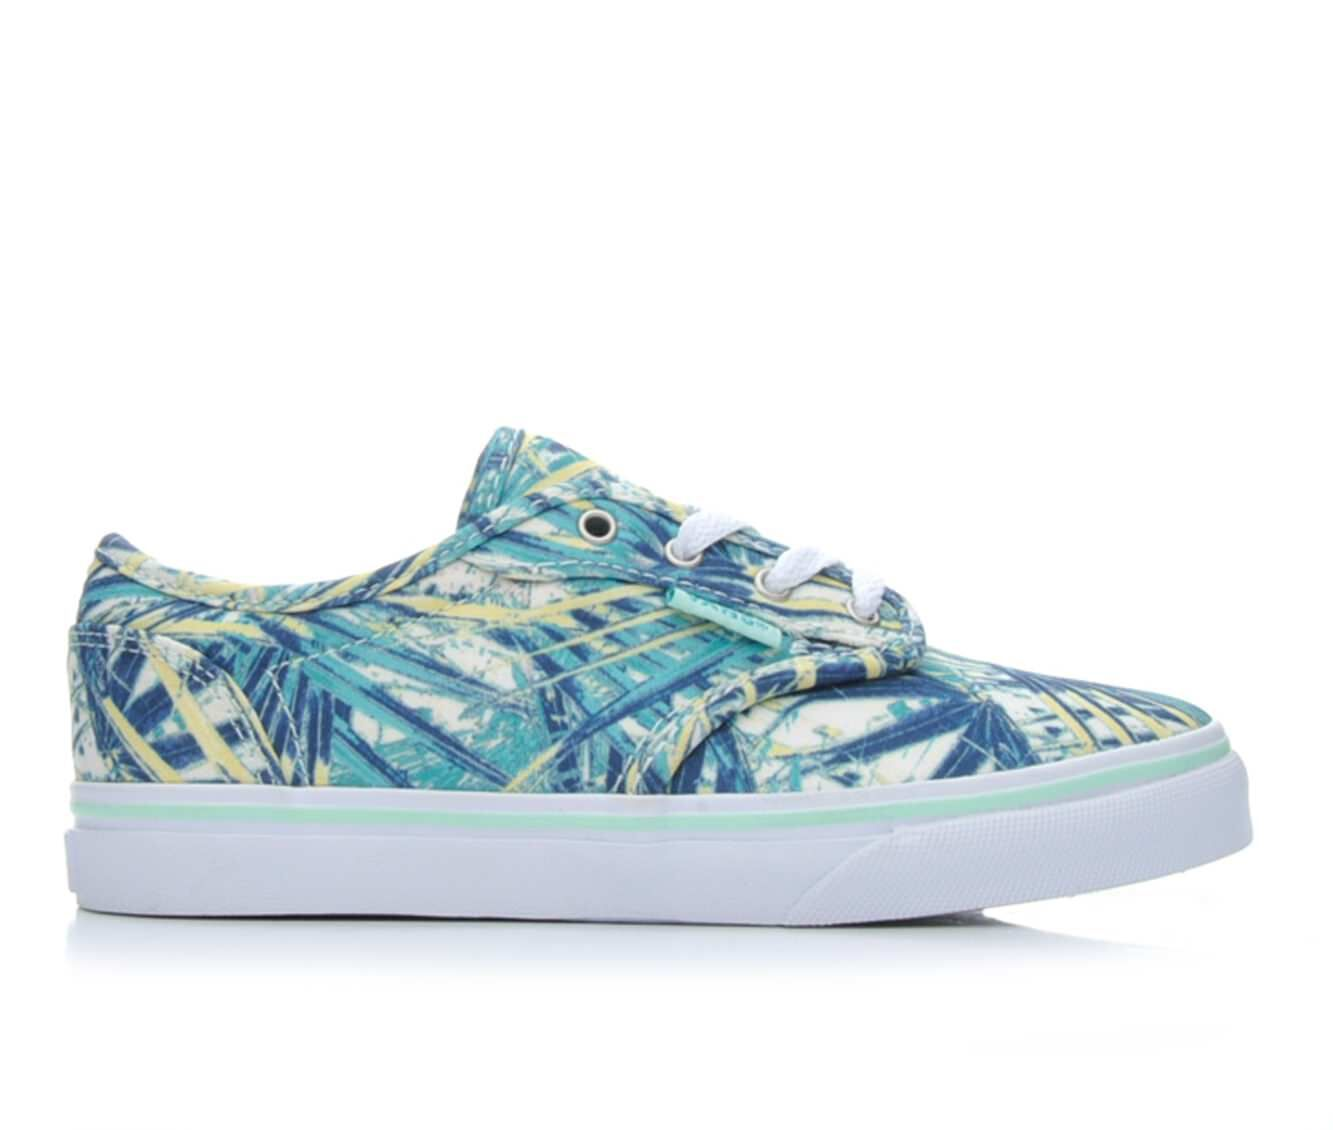 Images. Girls' Vans Atwood Low G Skate Shoes